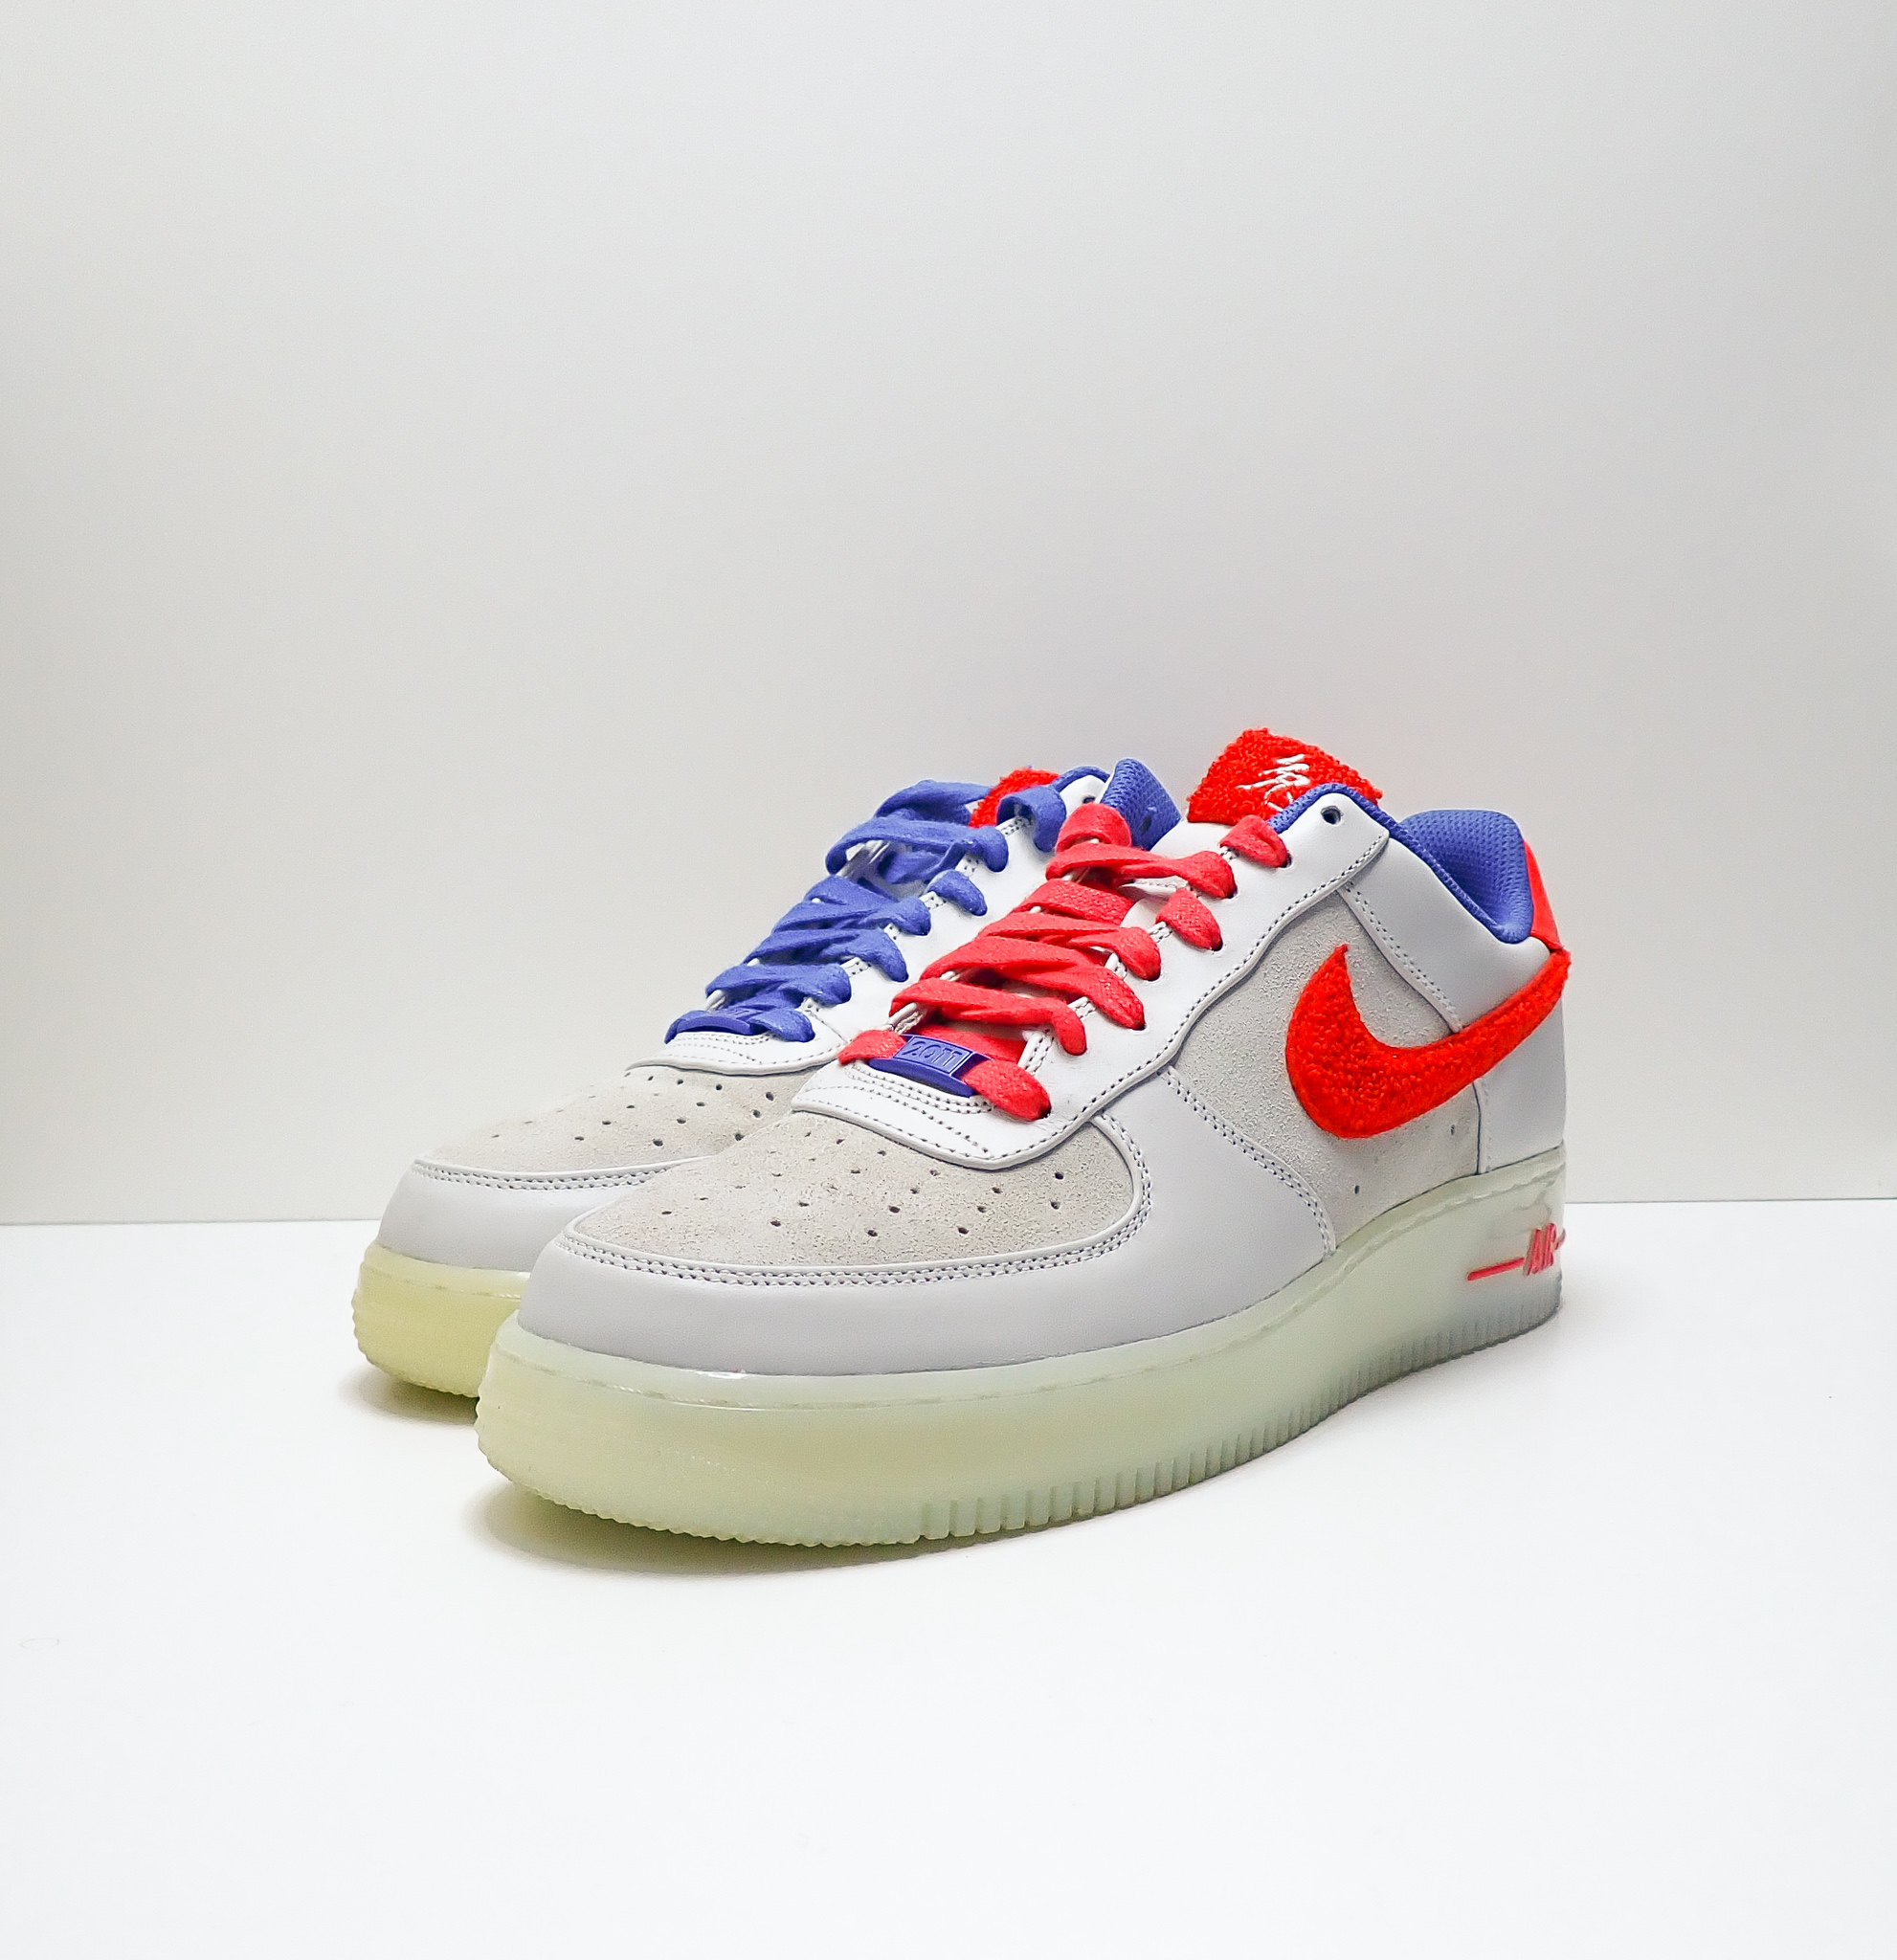 Nike Air Force 1 Low Year of the Rabbit